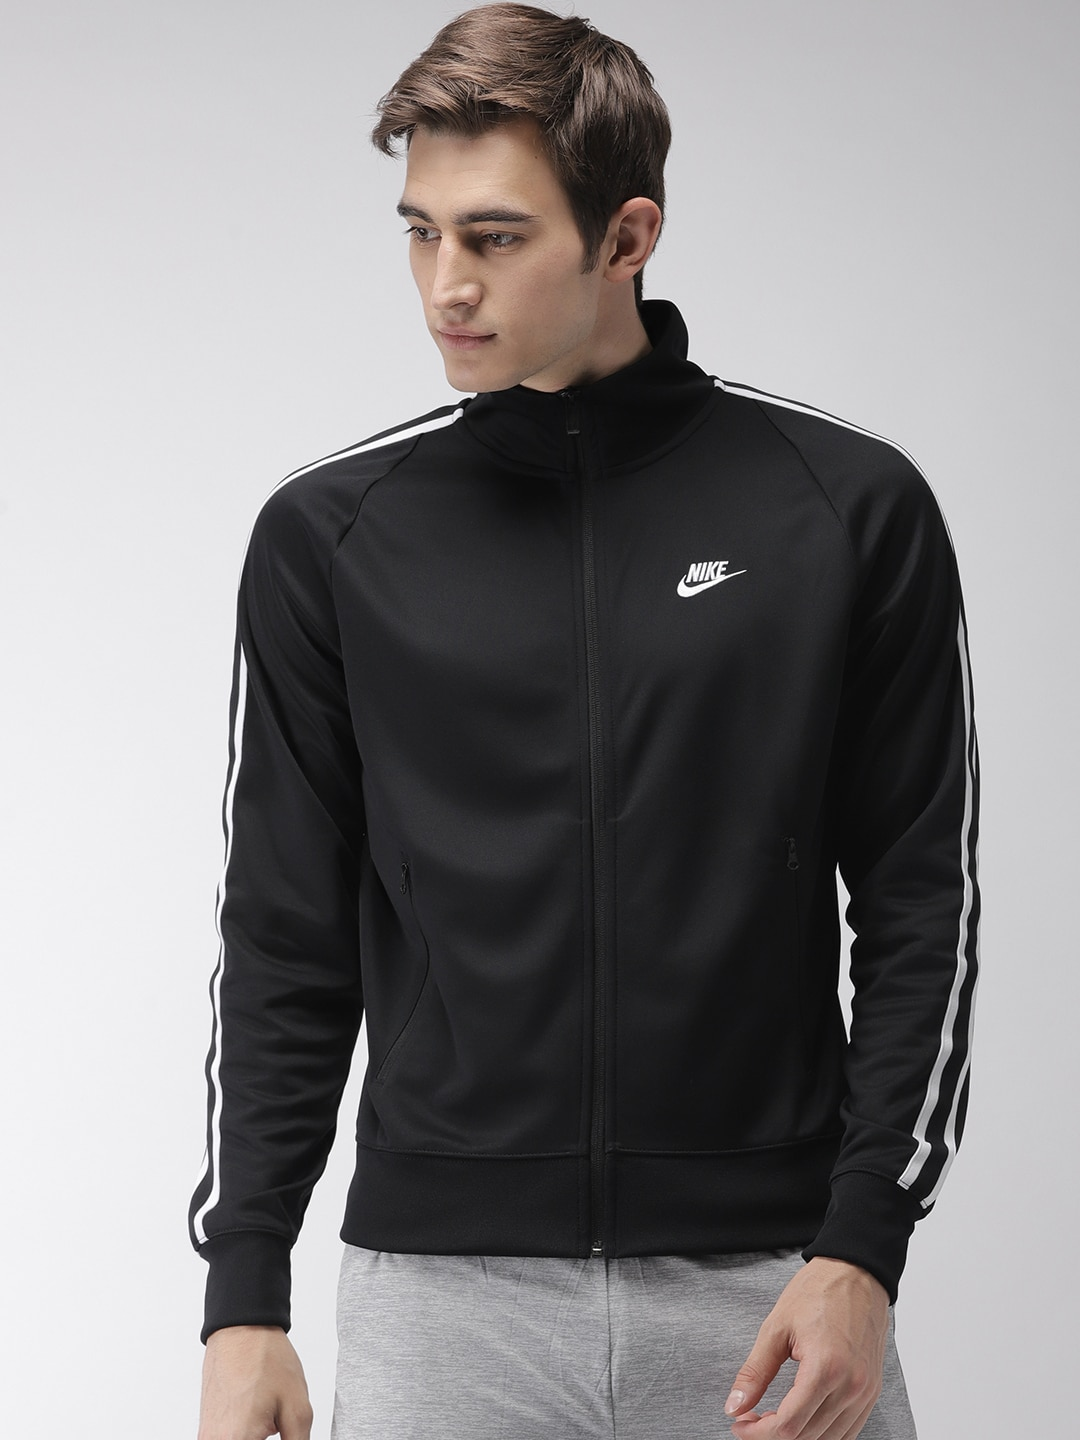 new concept 1292e ca9bb Nike Jackets - Buy Nike Jacket for Men   Women Online   Myntra